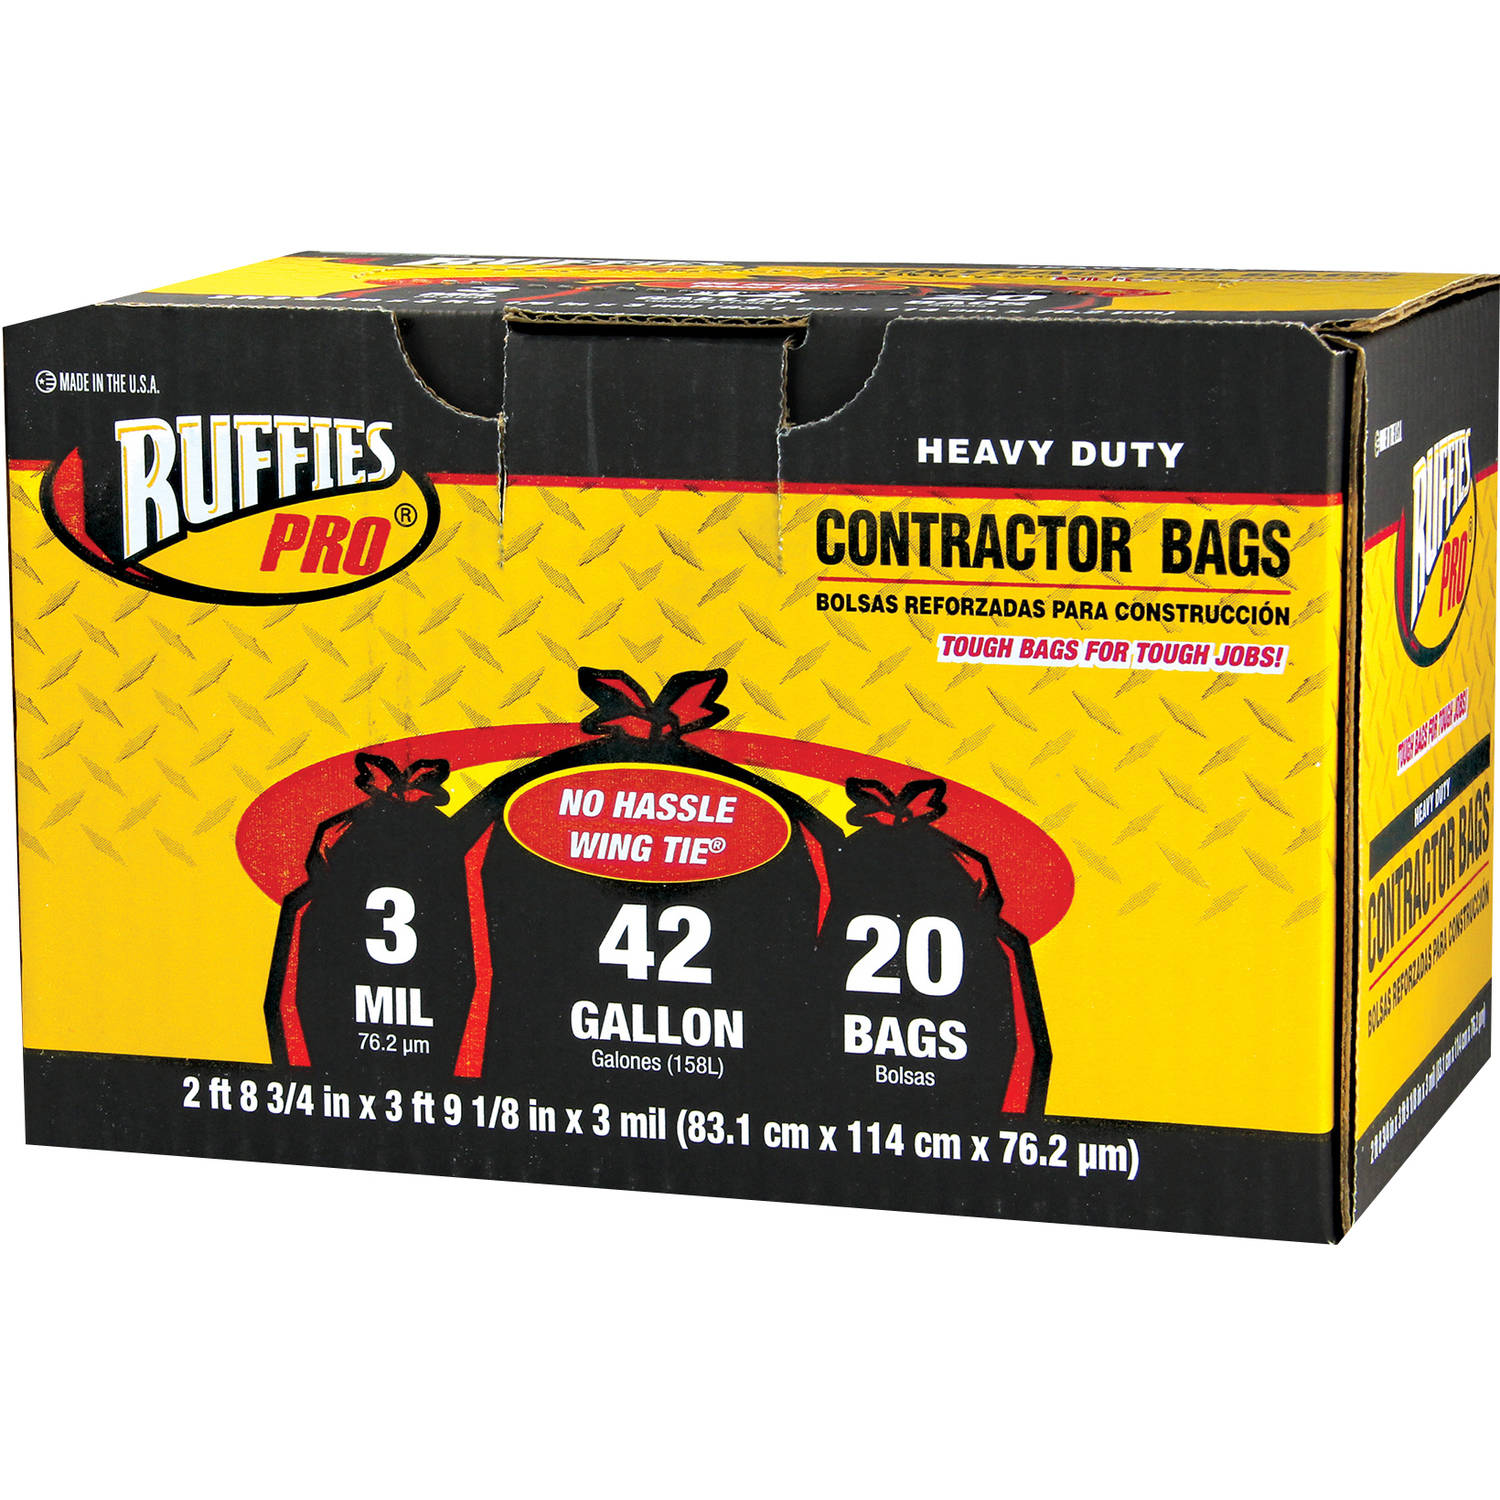 Ruffies Pro Heavy Duty Contractor Bags, 42 gal, 20 count